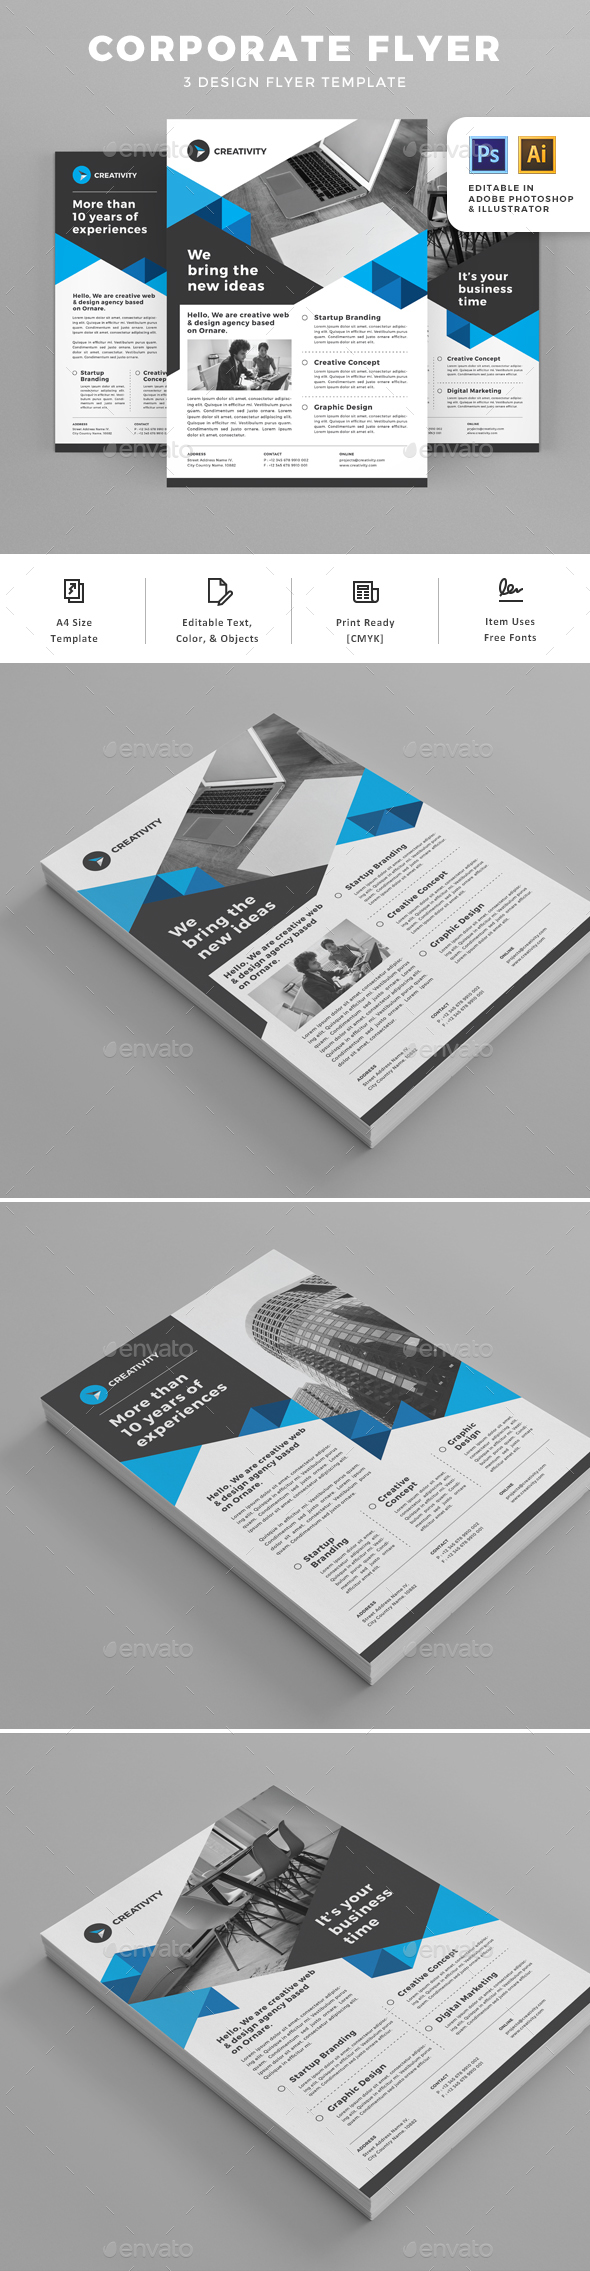 Flyers - Corporate Flyers